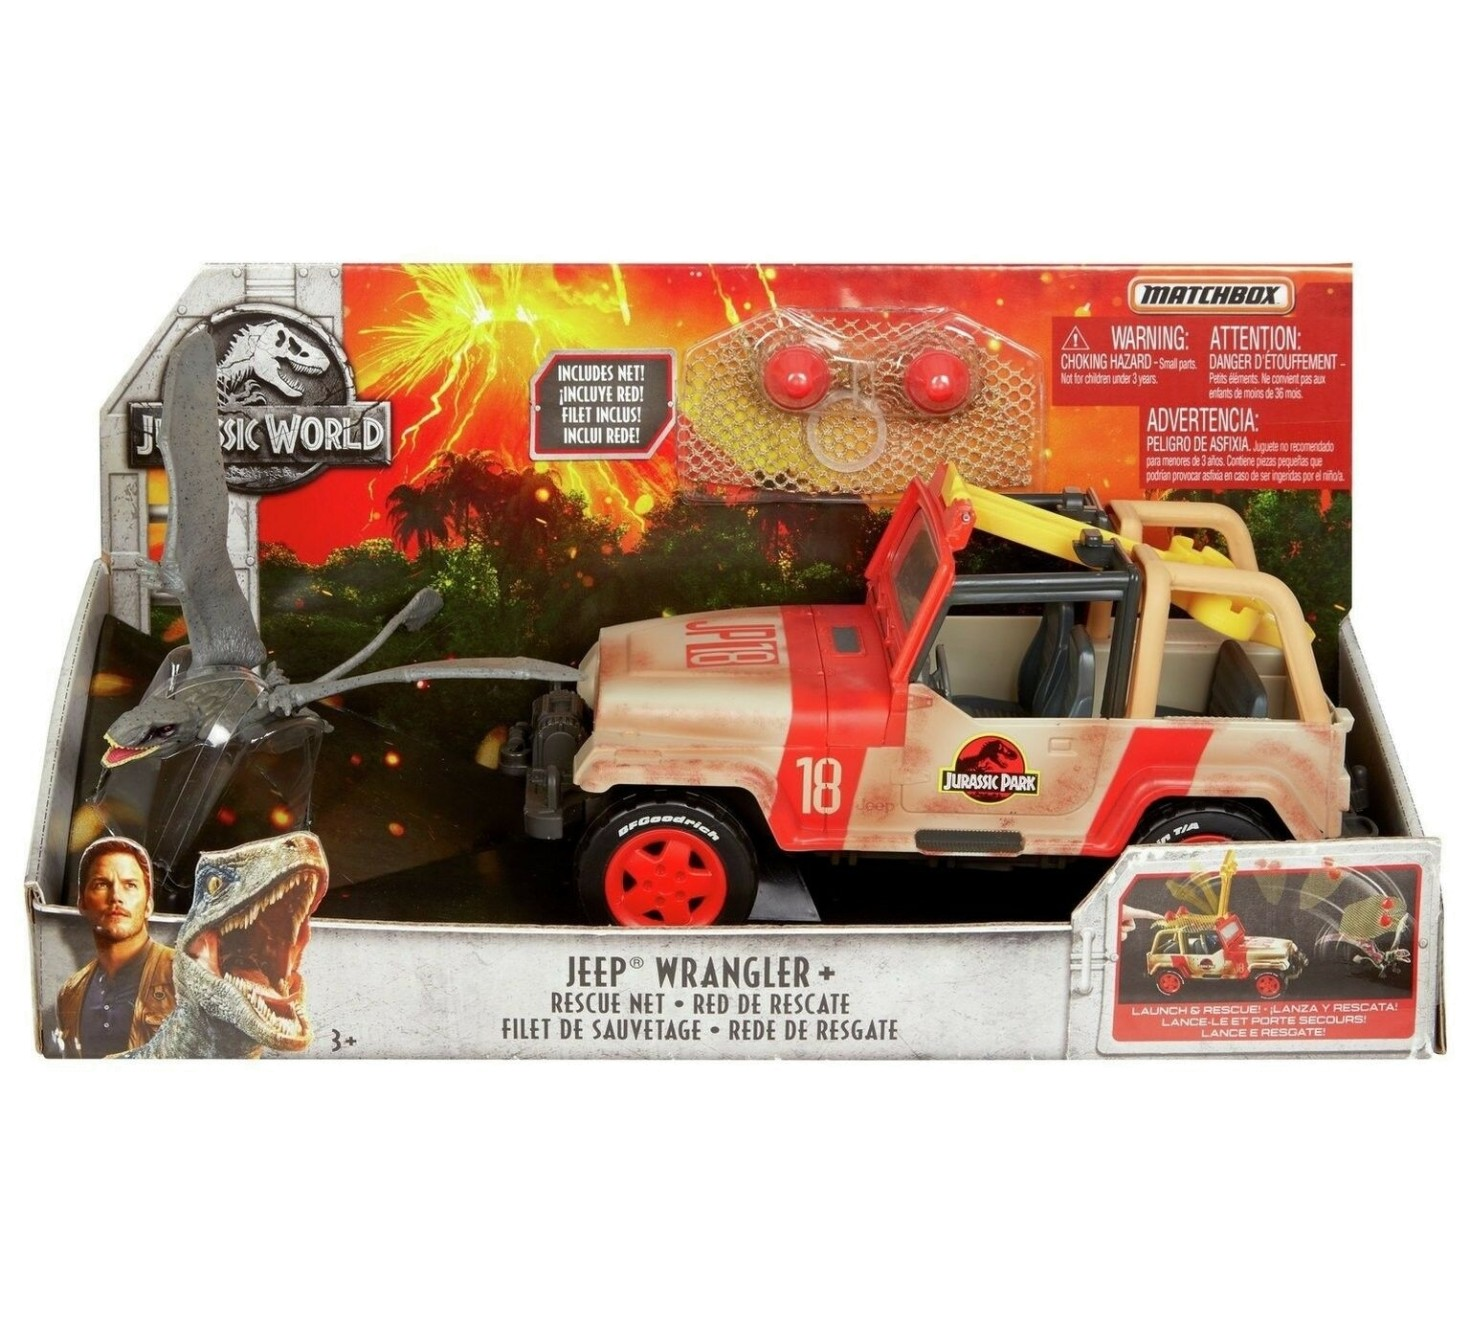 JURASSIC WORLD JEEP WRANGLER